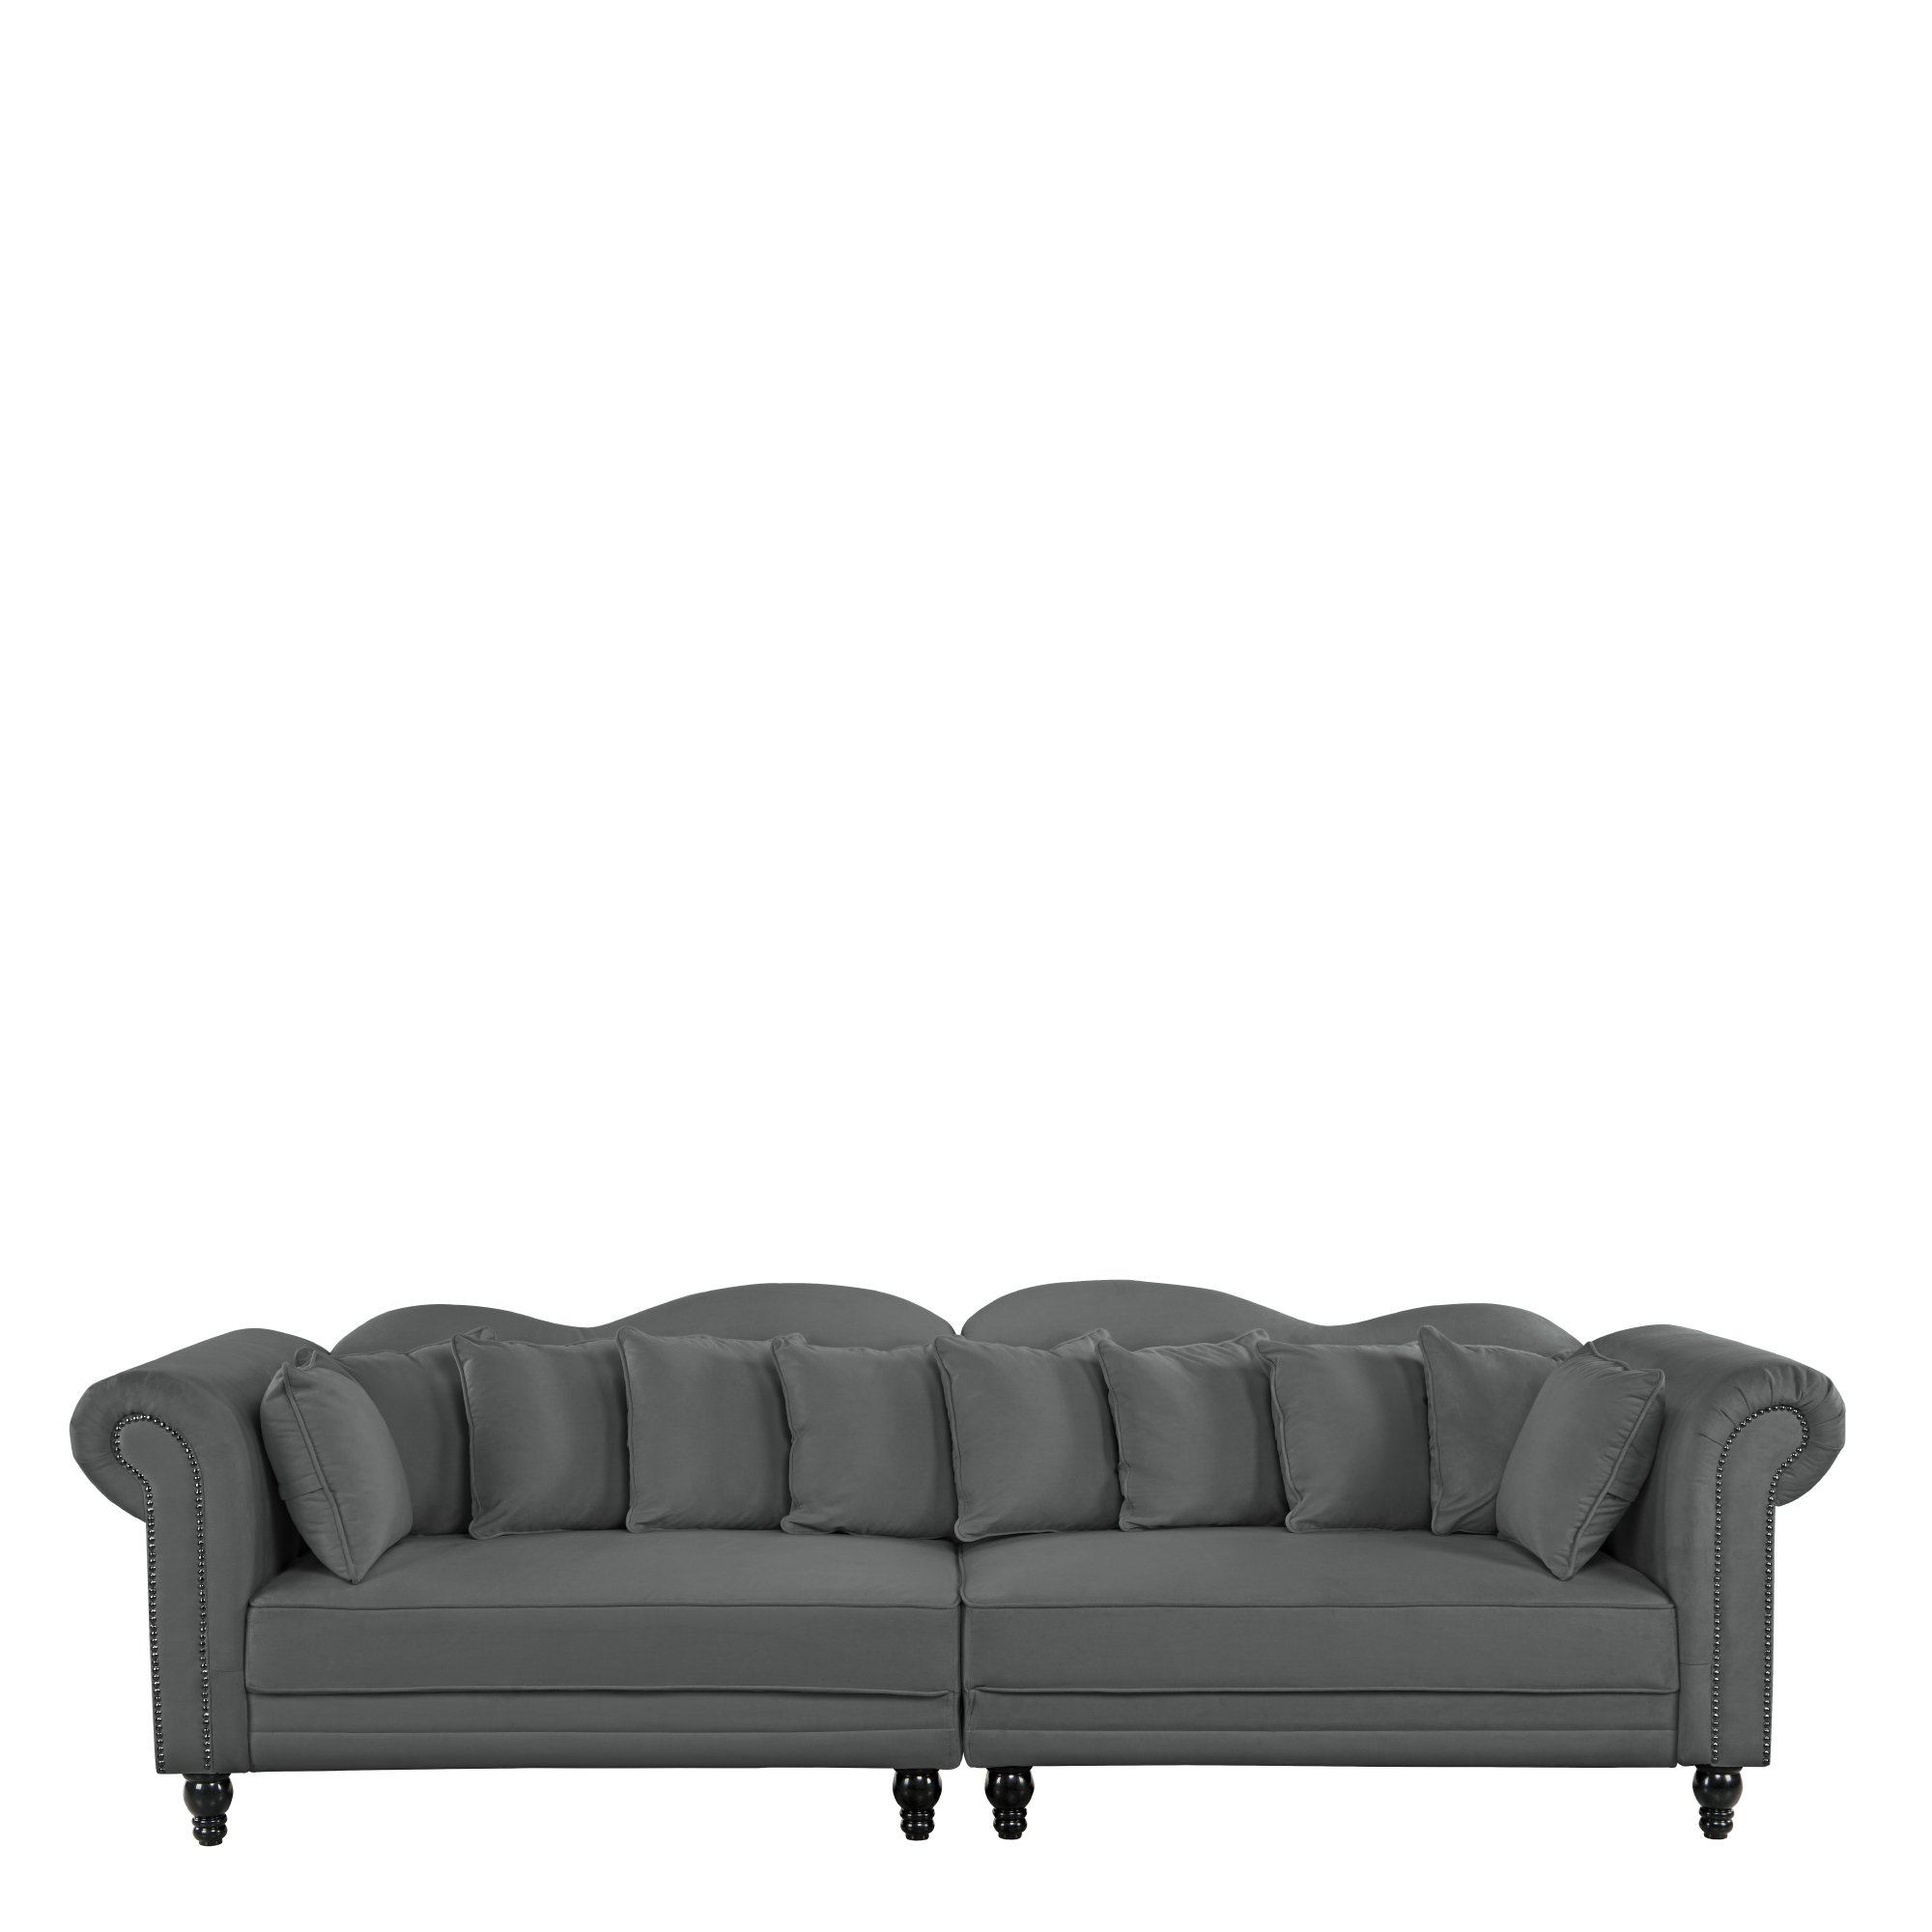 Details about 2 PC Large Chesterfield Sofa, Velvet Couch w/ Scroll Arms,  Nailheads, Dark Grey